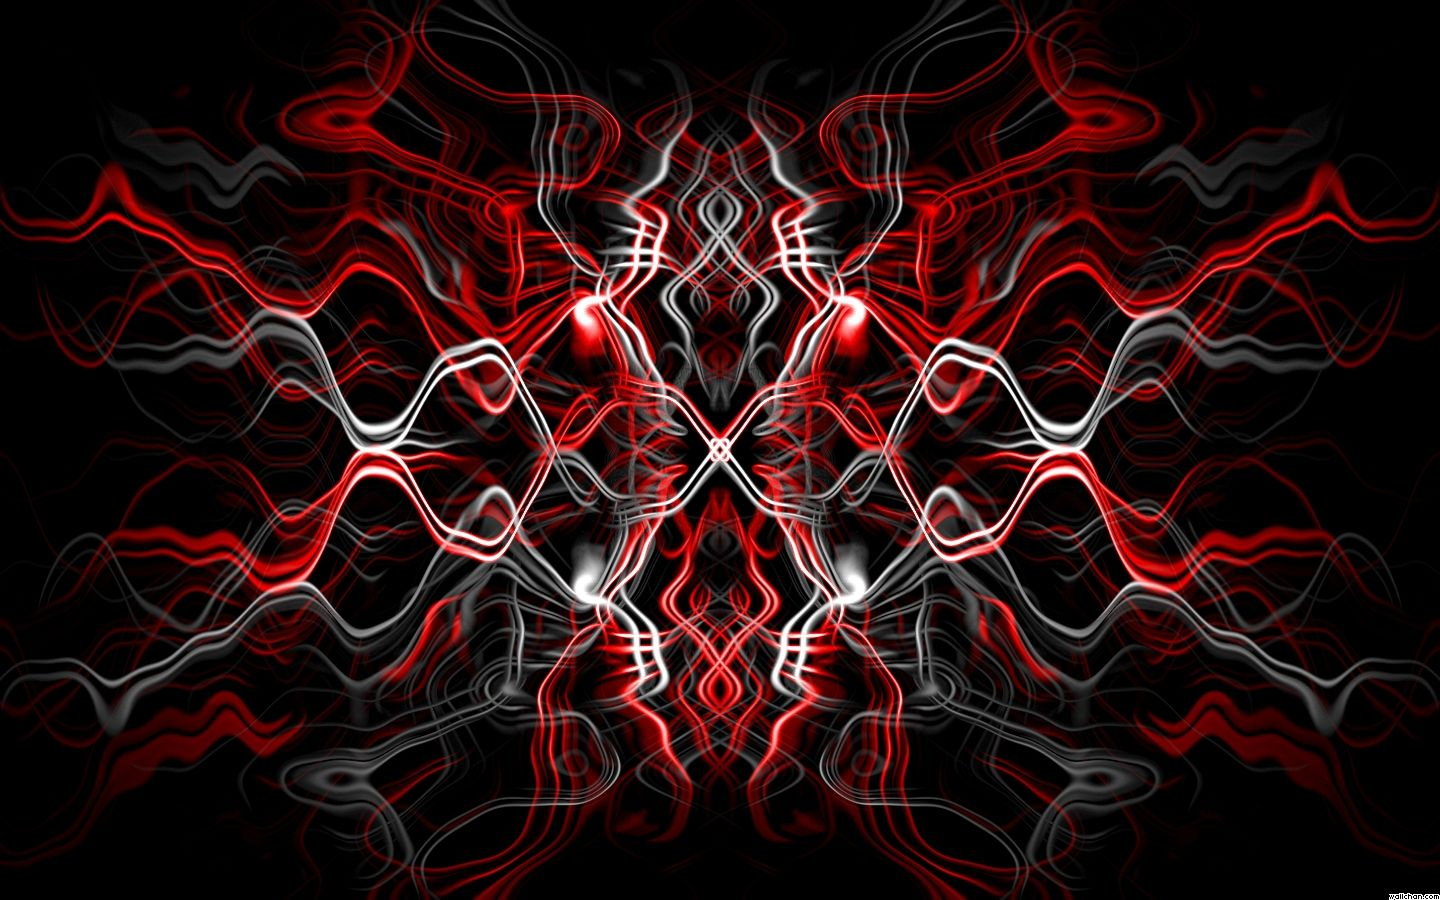 Red and black red and black abstract wallpaper black - Black red abstract wallpaper ...